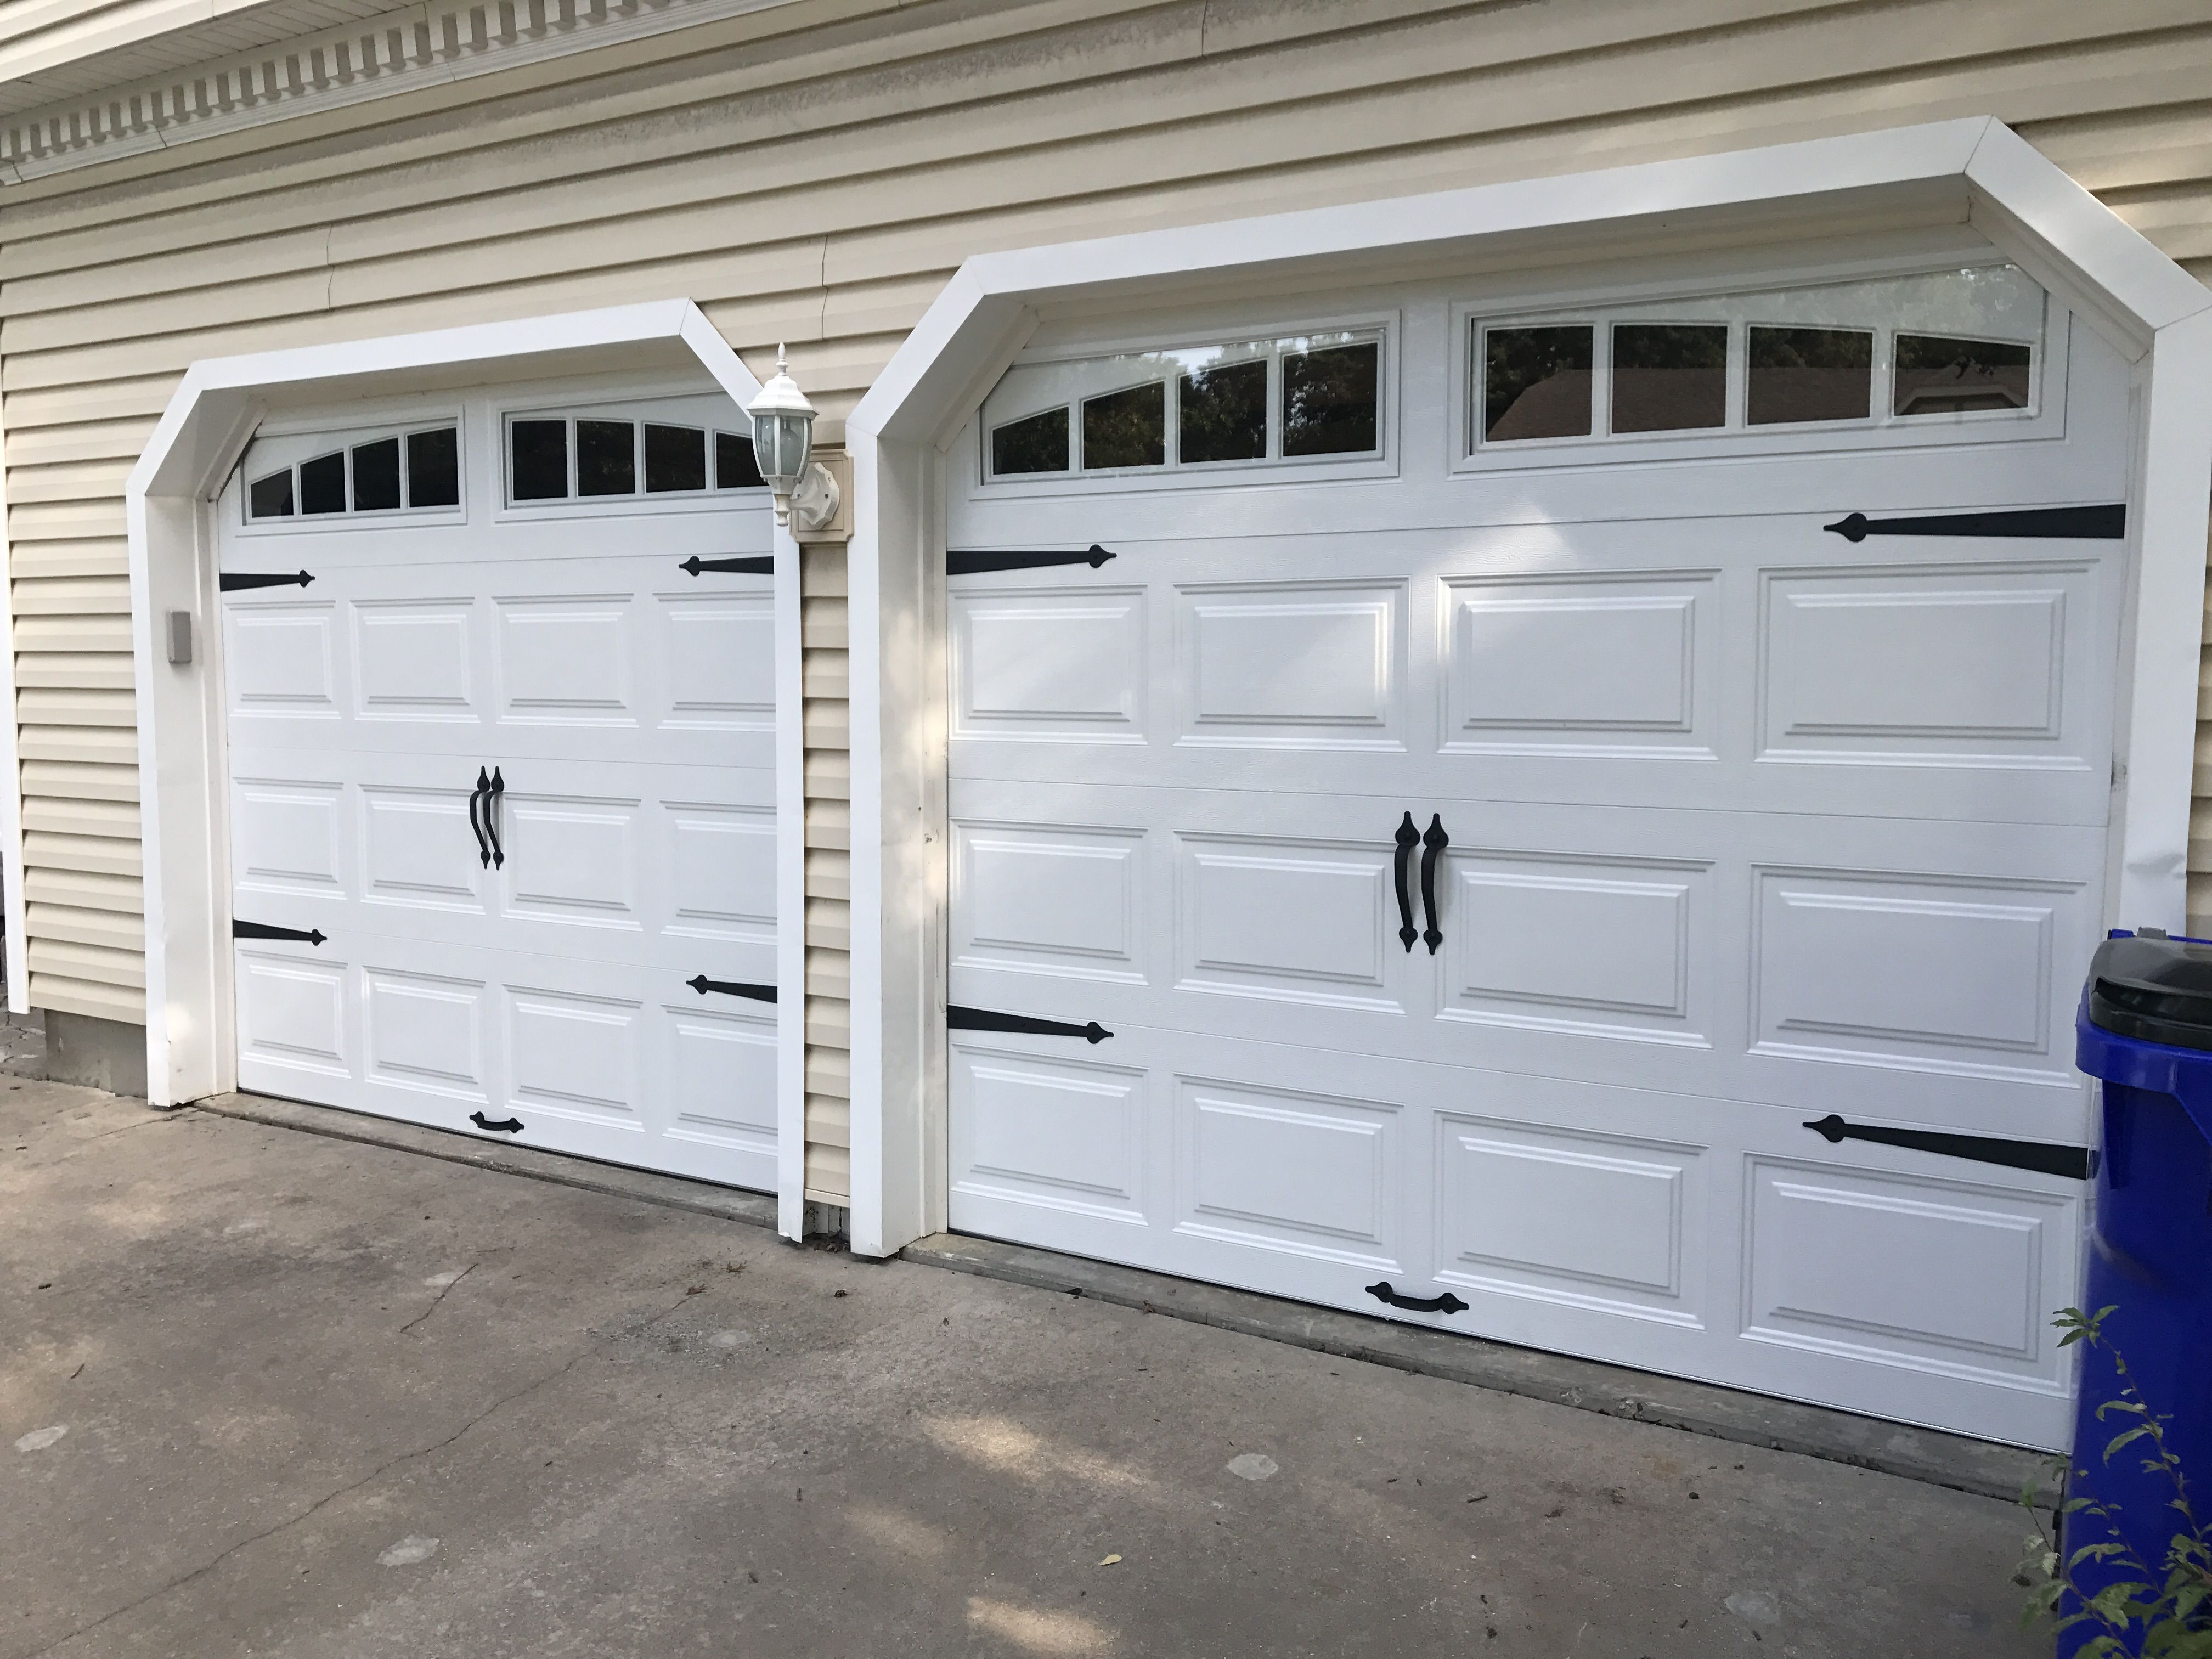 White Short Panel Garage Door With Arched Thames Windows And Decorative Handles And Straps Teamtay Garage Doors Garage Door Repair Service Garage Door Panels